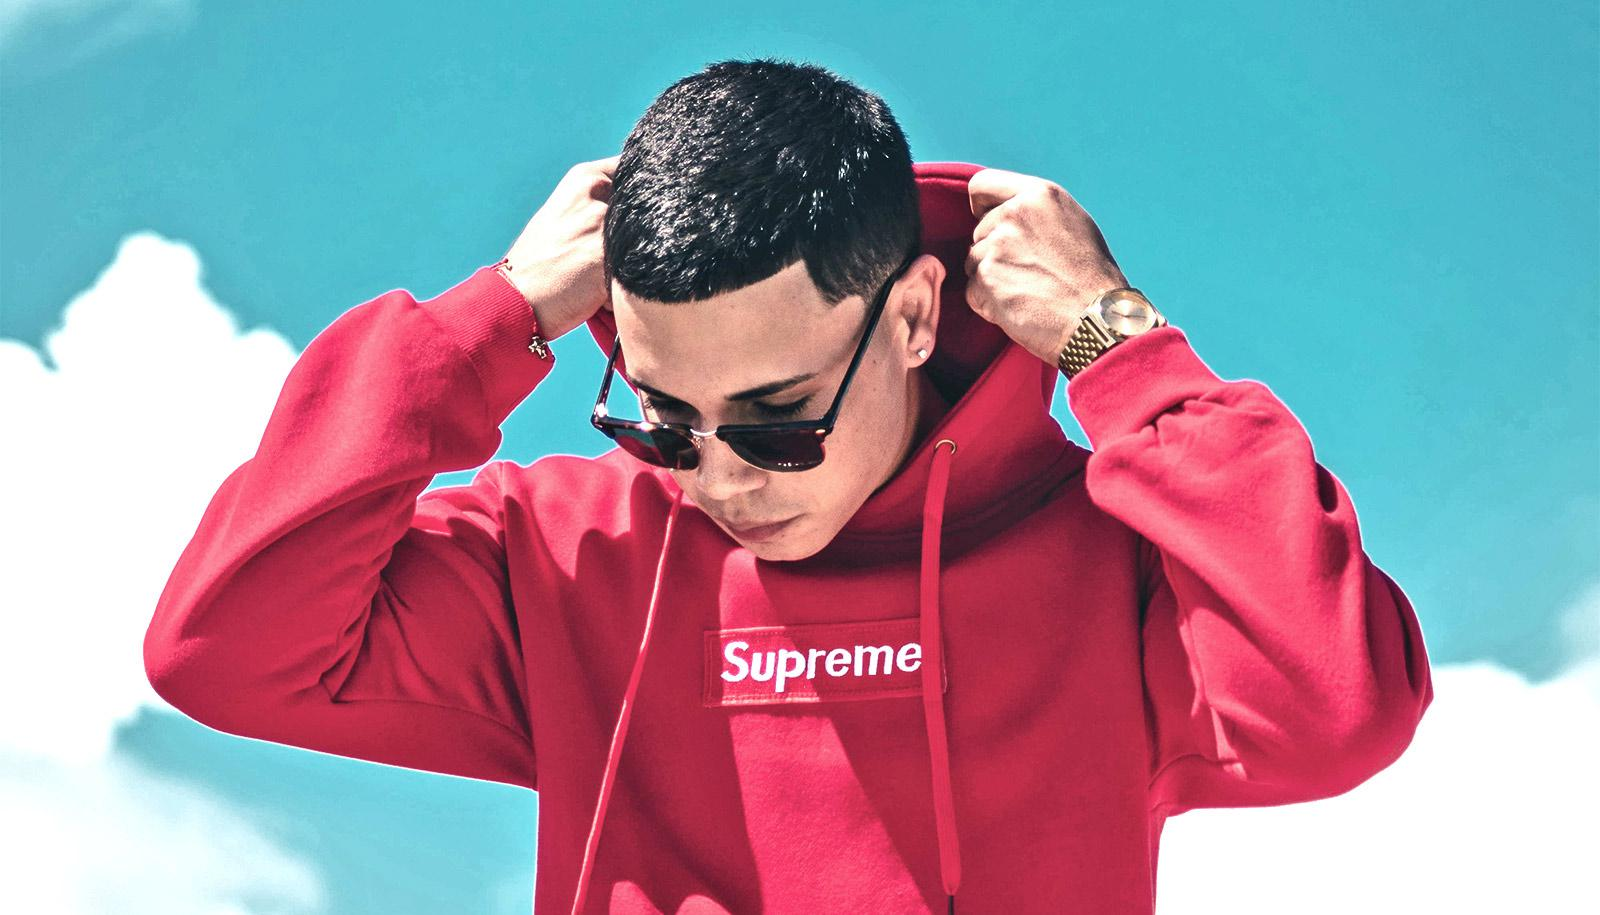 young man wearing Supreme hoodie (brands concept)